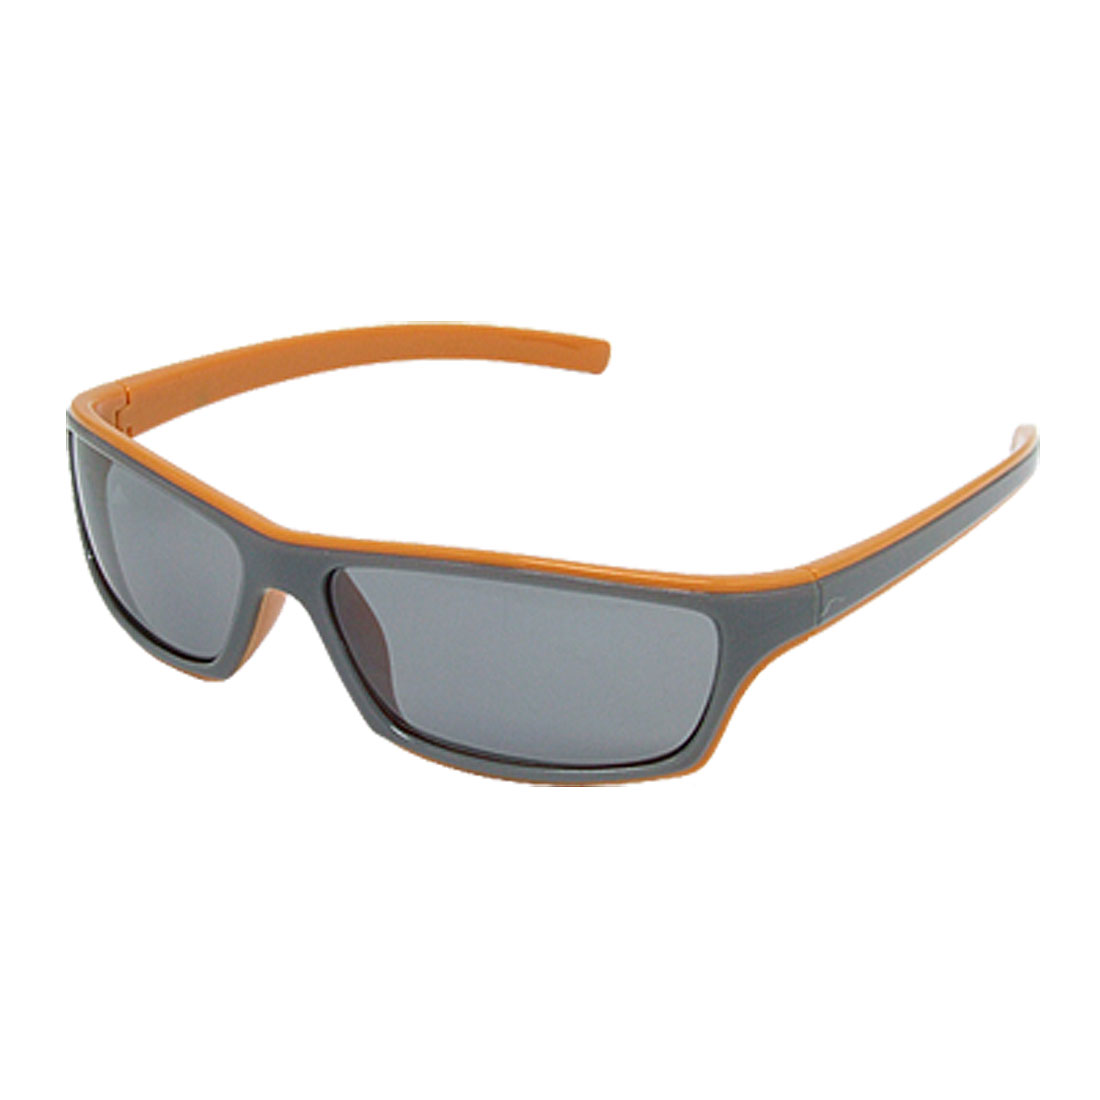 Fashion Lady's Sunglasses with Orange Grey Frame